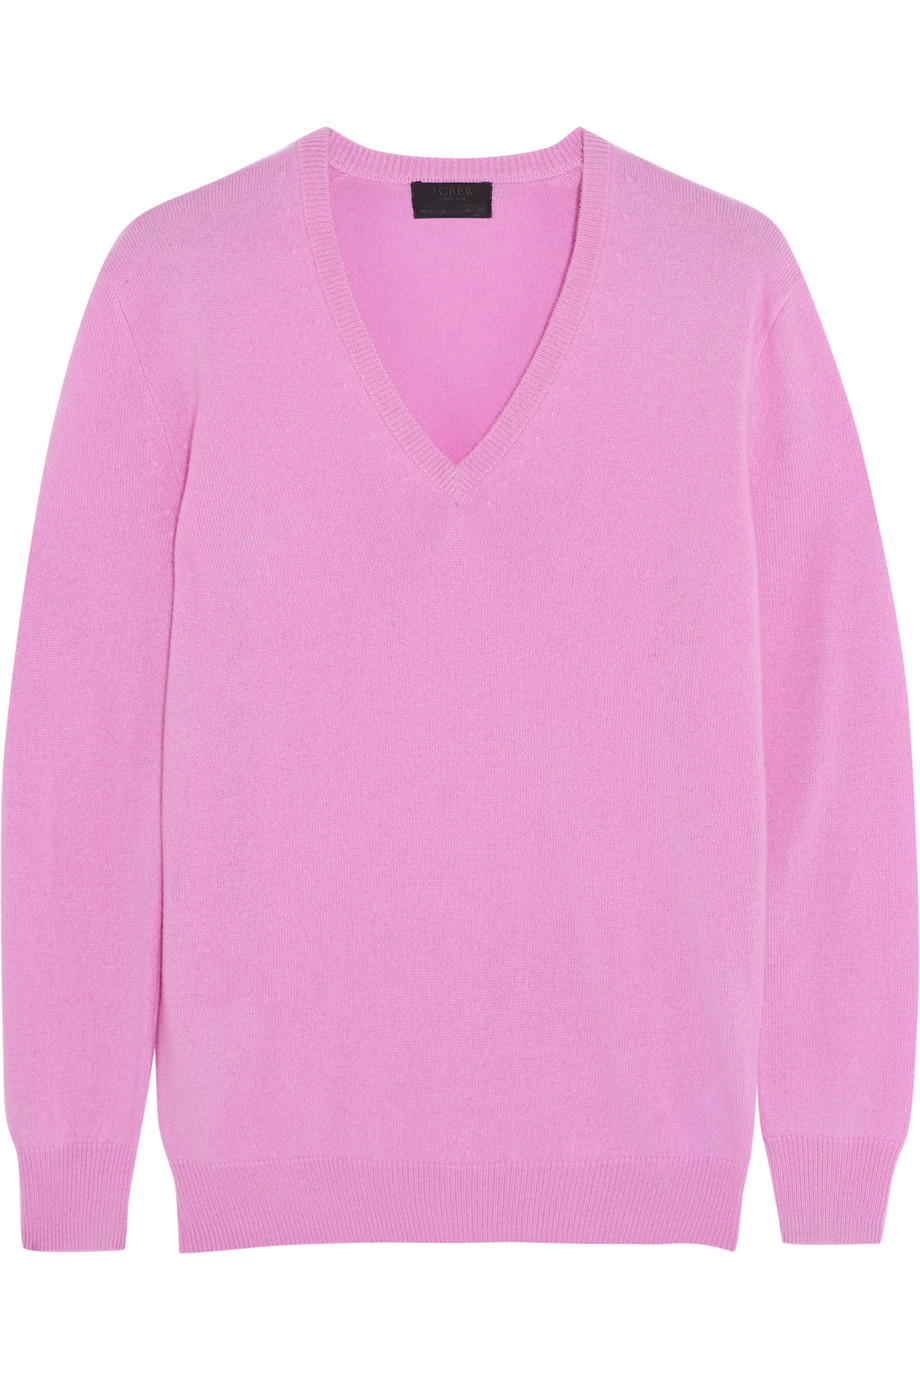 J.Crew Cashmere Sweater, Baby Pink, Women's, Size: XS